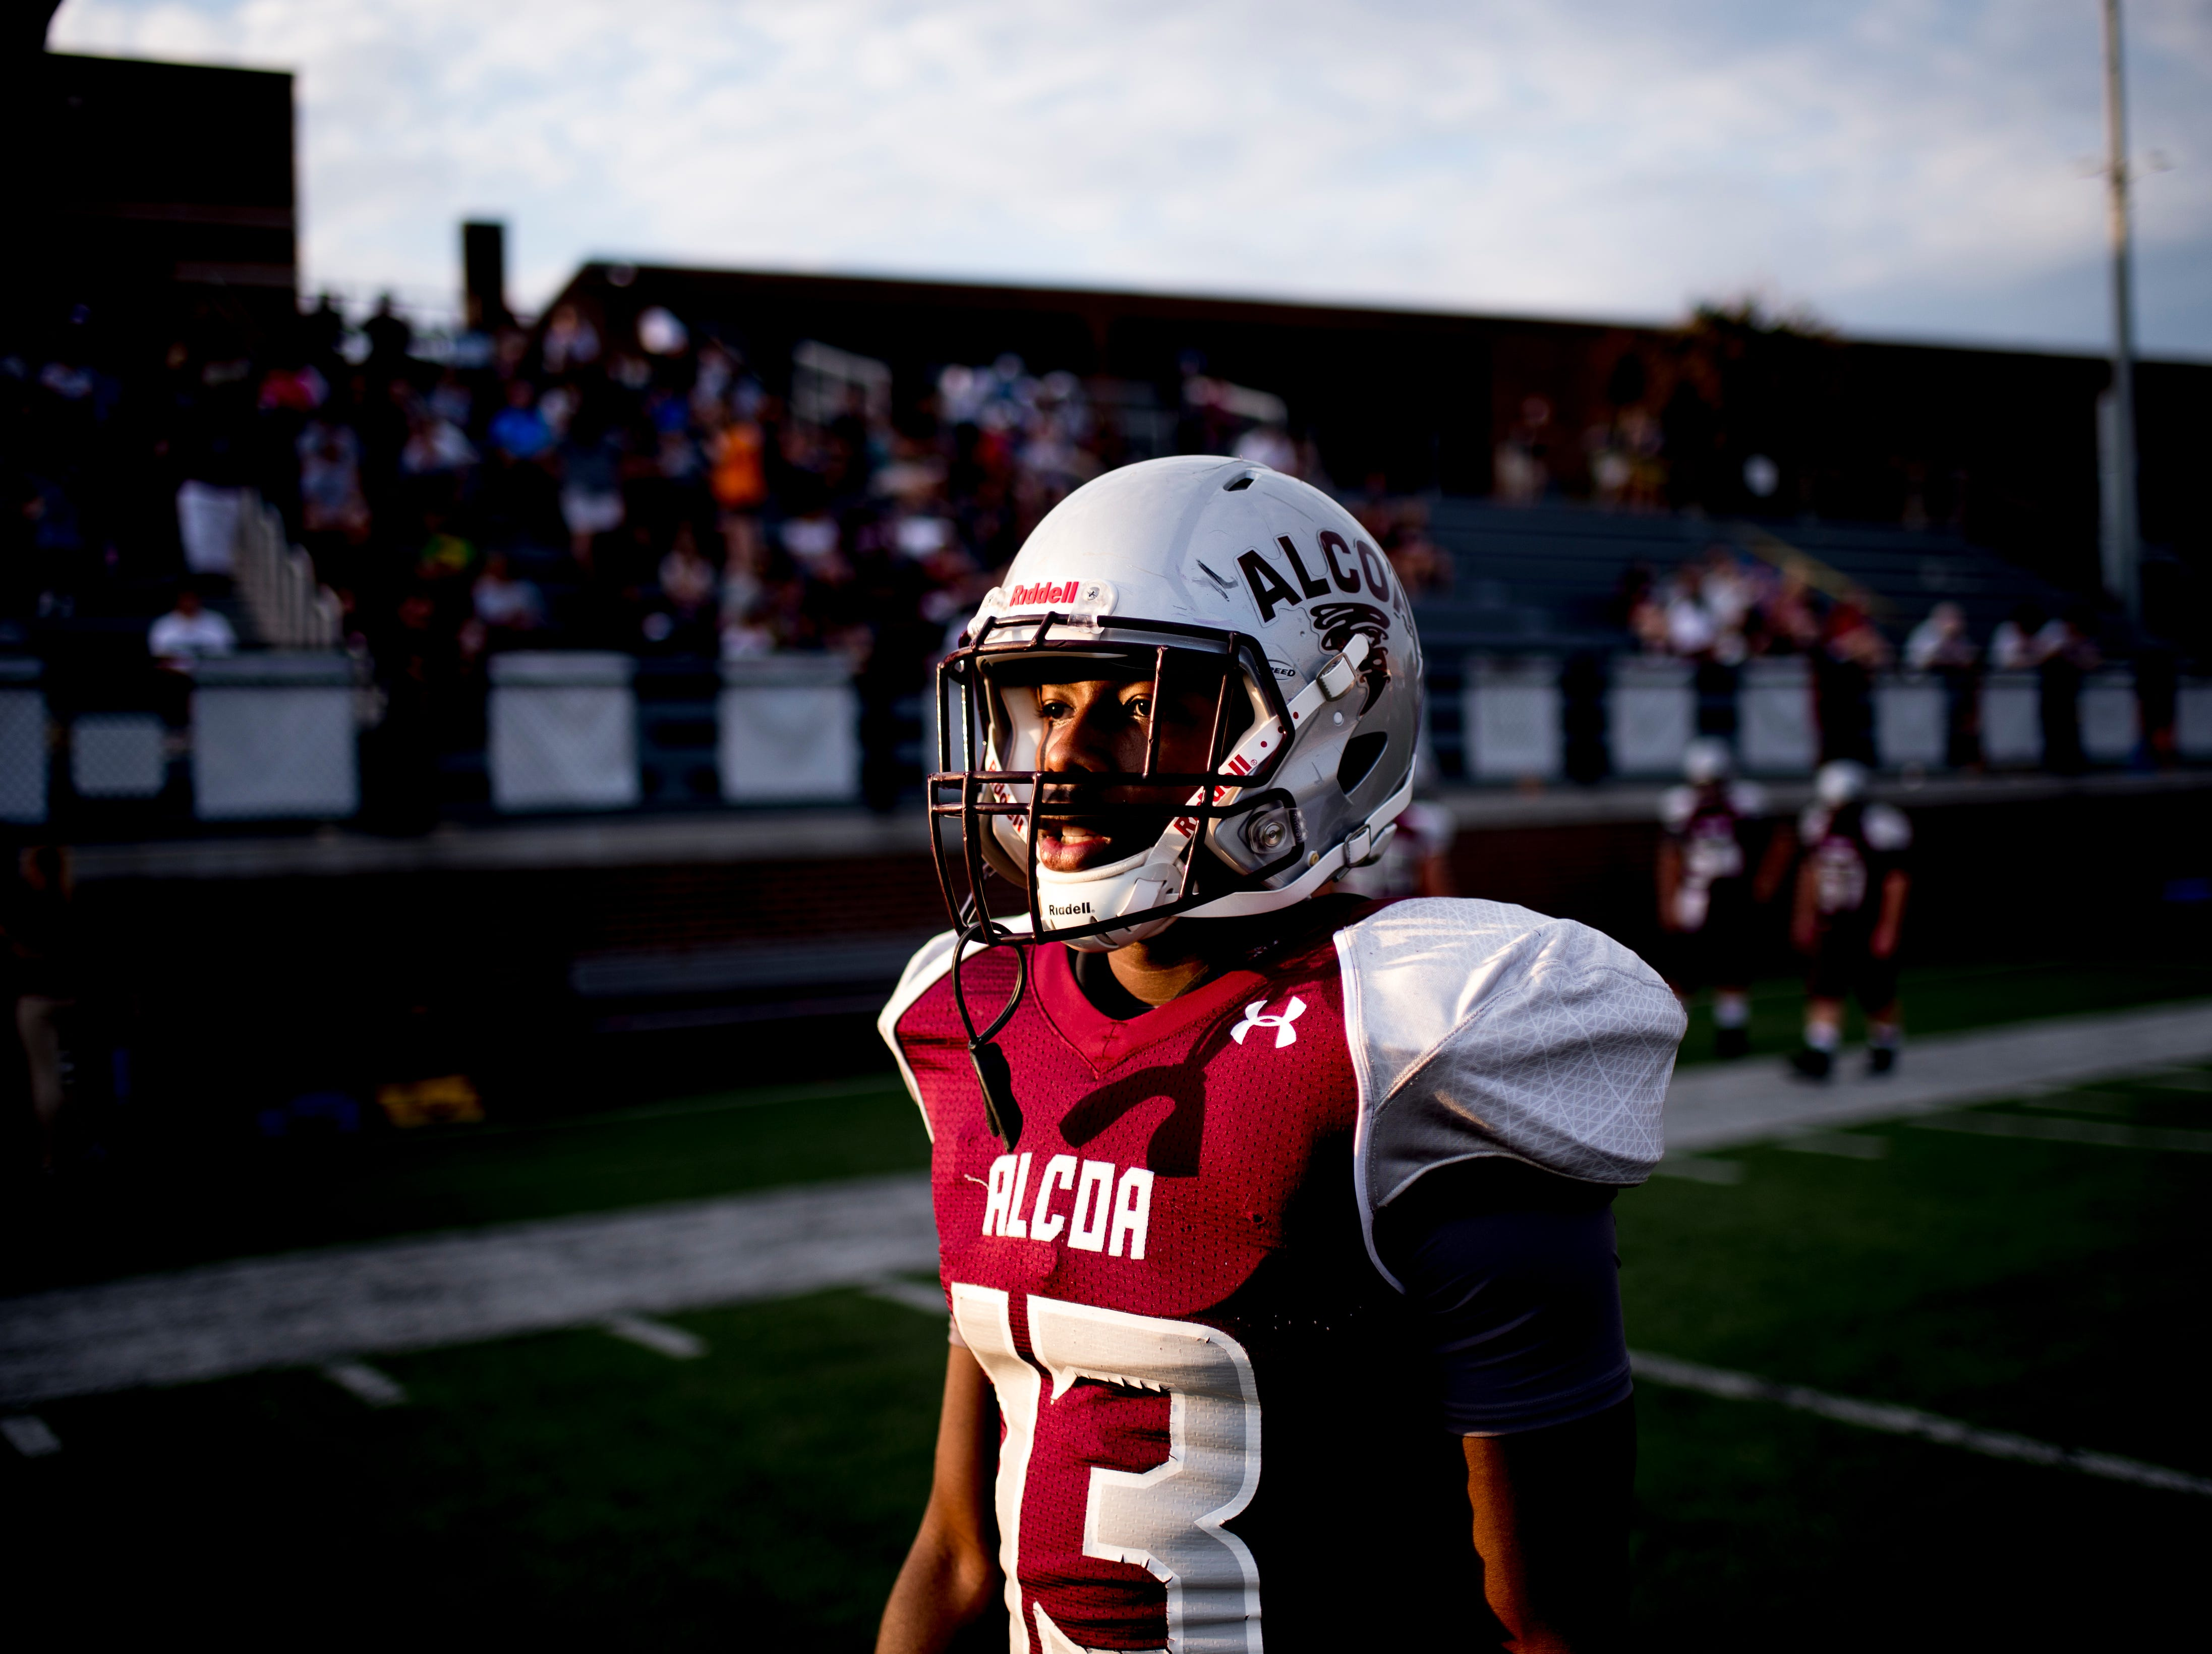 Alcoa's Ronald Jackson (13) warms up on the field during a game between Alcoa and Dobyns-Bennett at Alcoa High School in Alcoa, Tennessee on Friday, September 21, 2018.